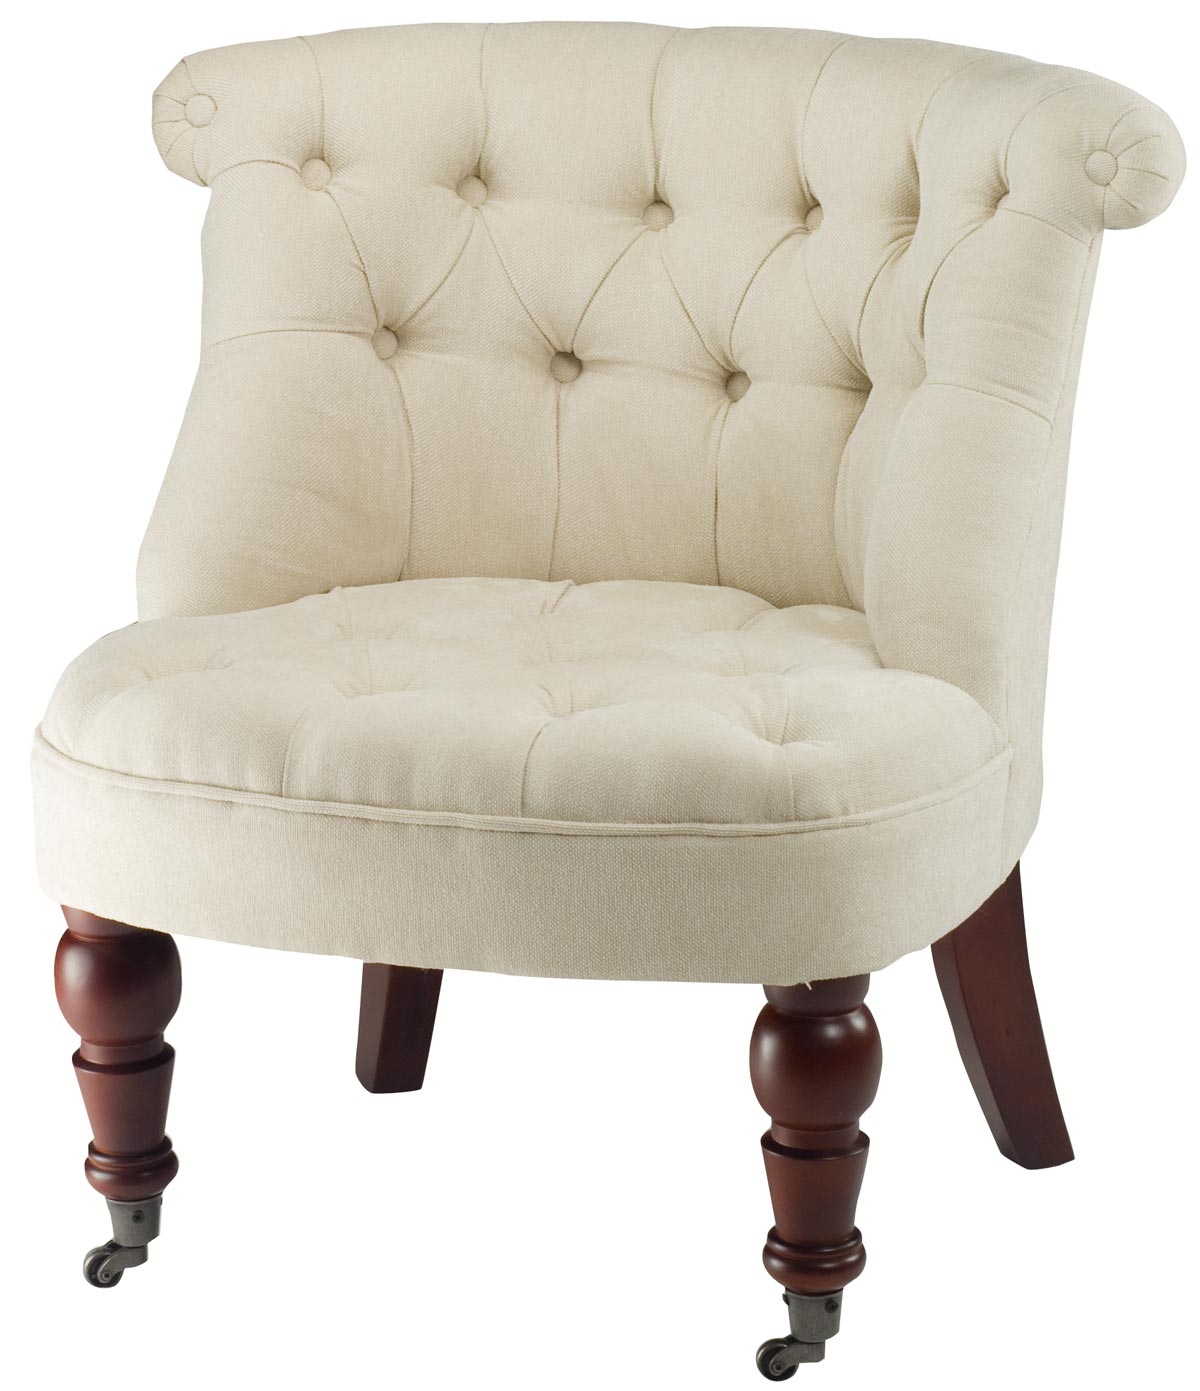 HUD8209A Accent Chairs - Furniture by Safavieh